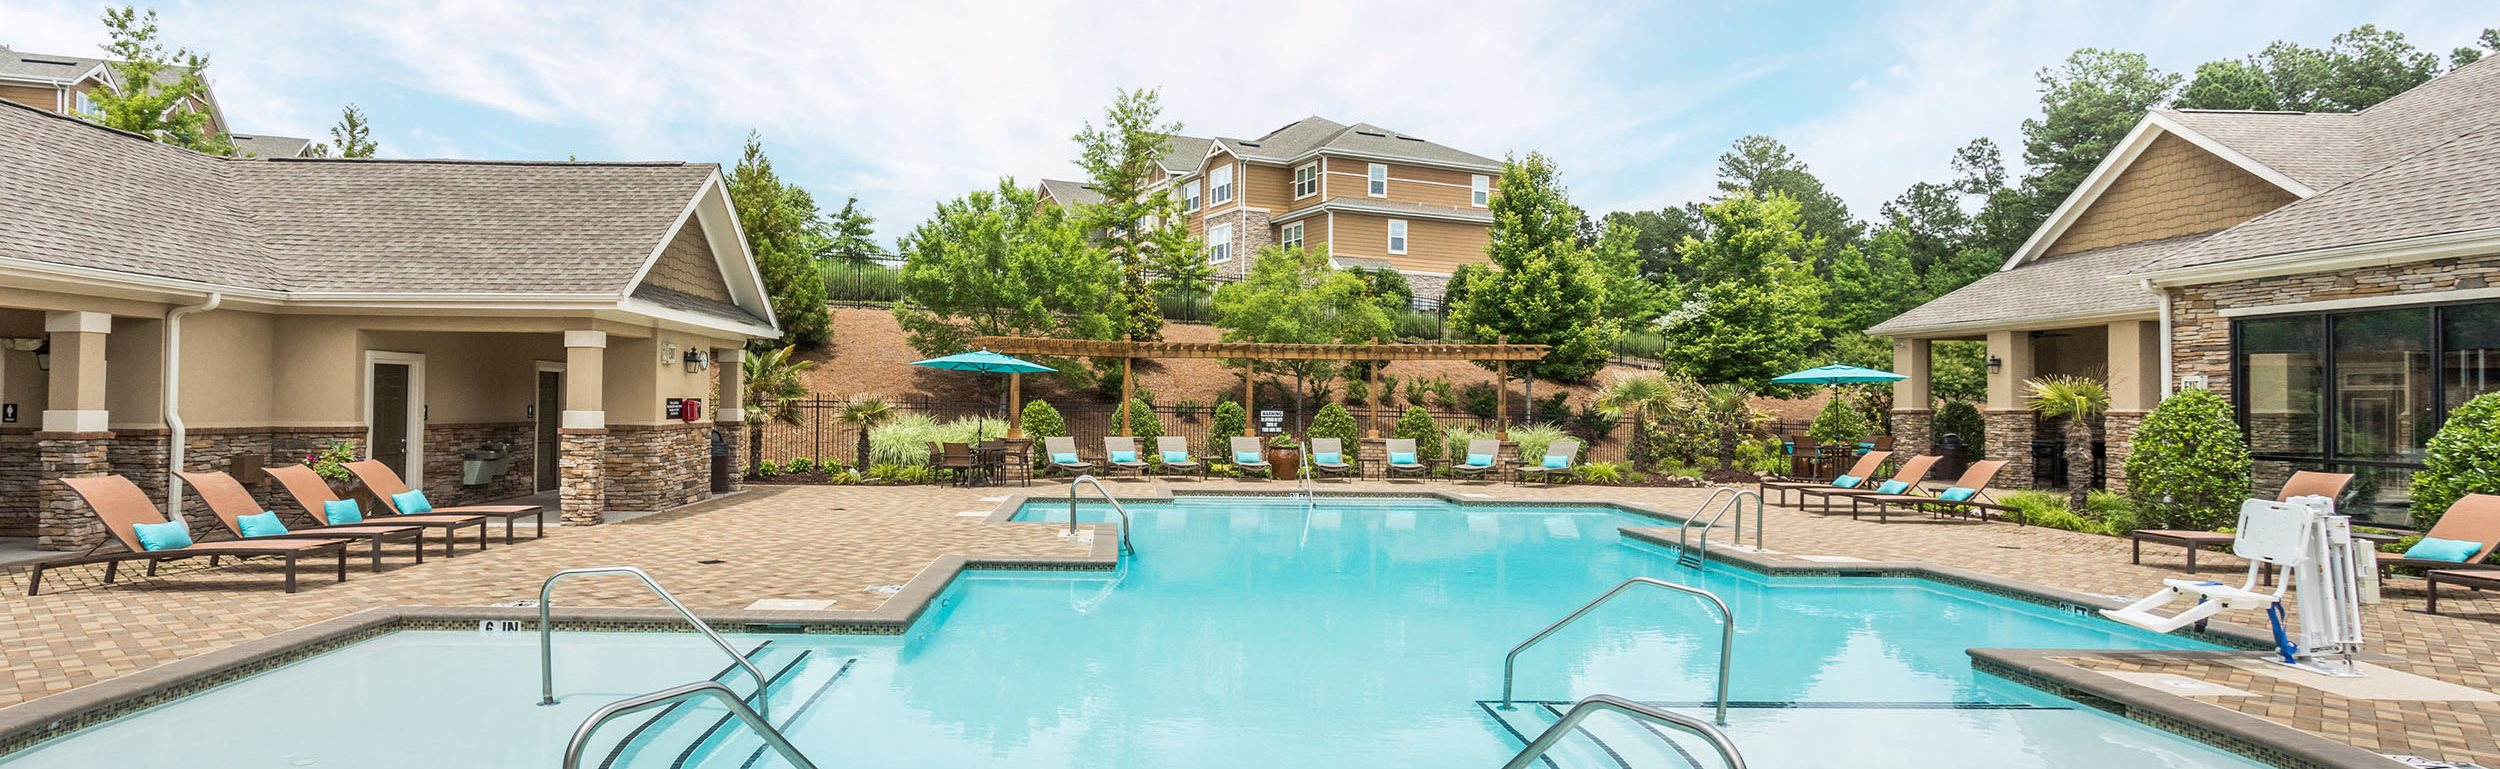 Swimming Pool, Sundeck and Clubhouse - Waterstone at Brier Creek